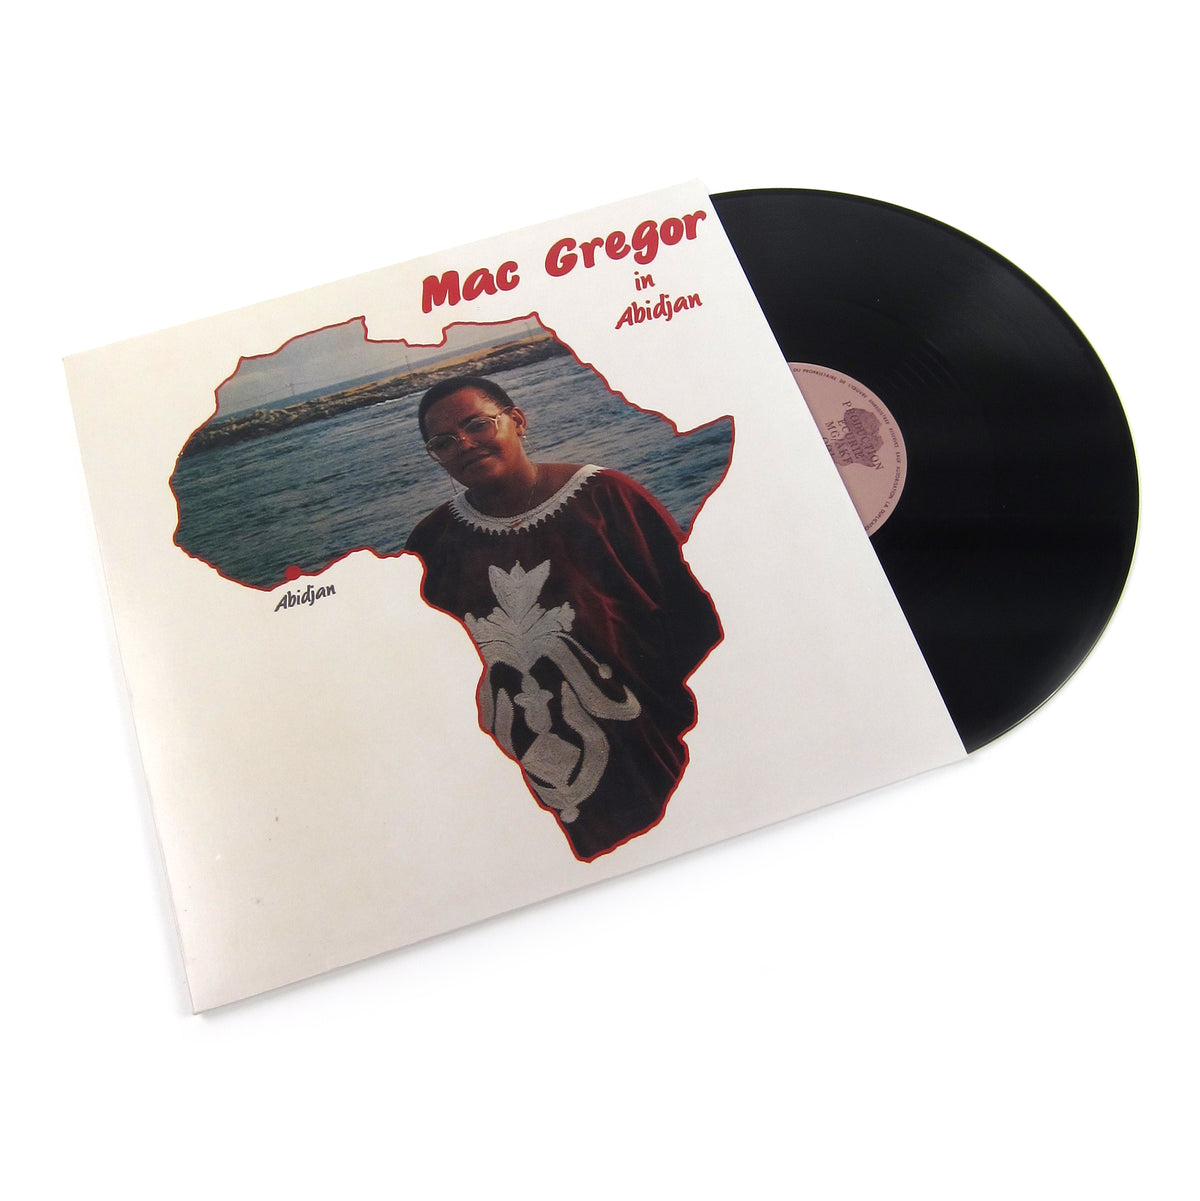 Mac Gregor: In Abidjan (Afro Digital Soul) Vinyl 12""